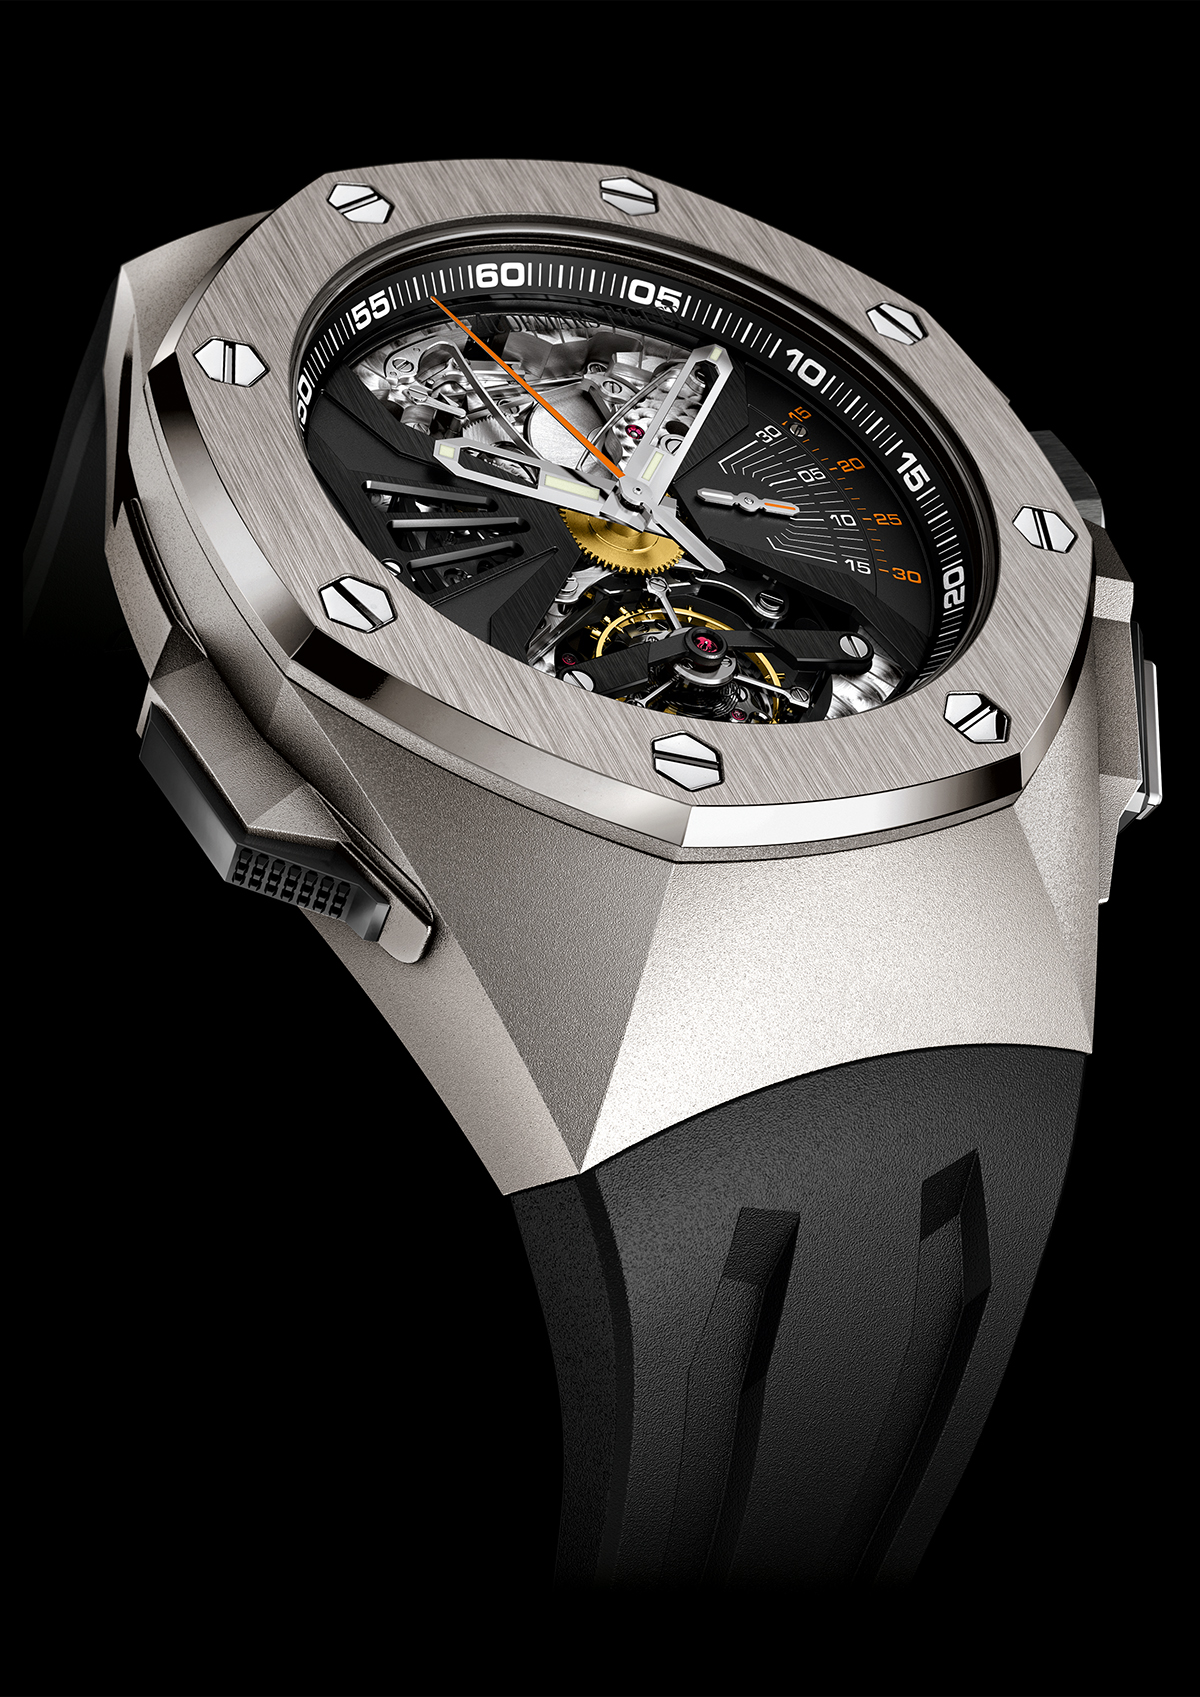 Audemars Piguet Royal Oak Concept Rd 1